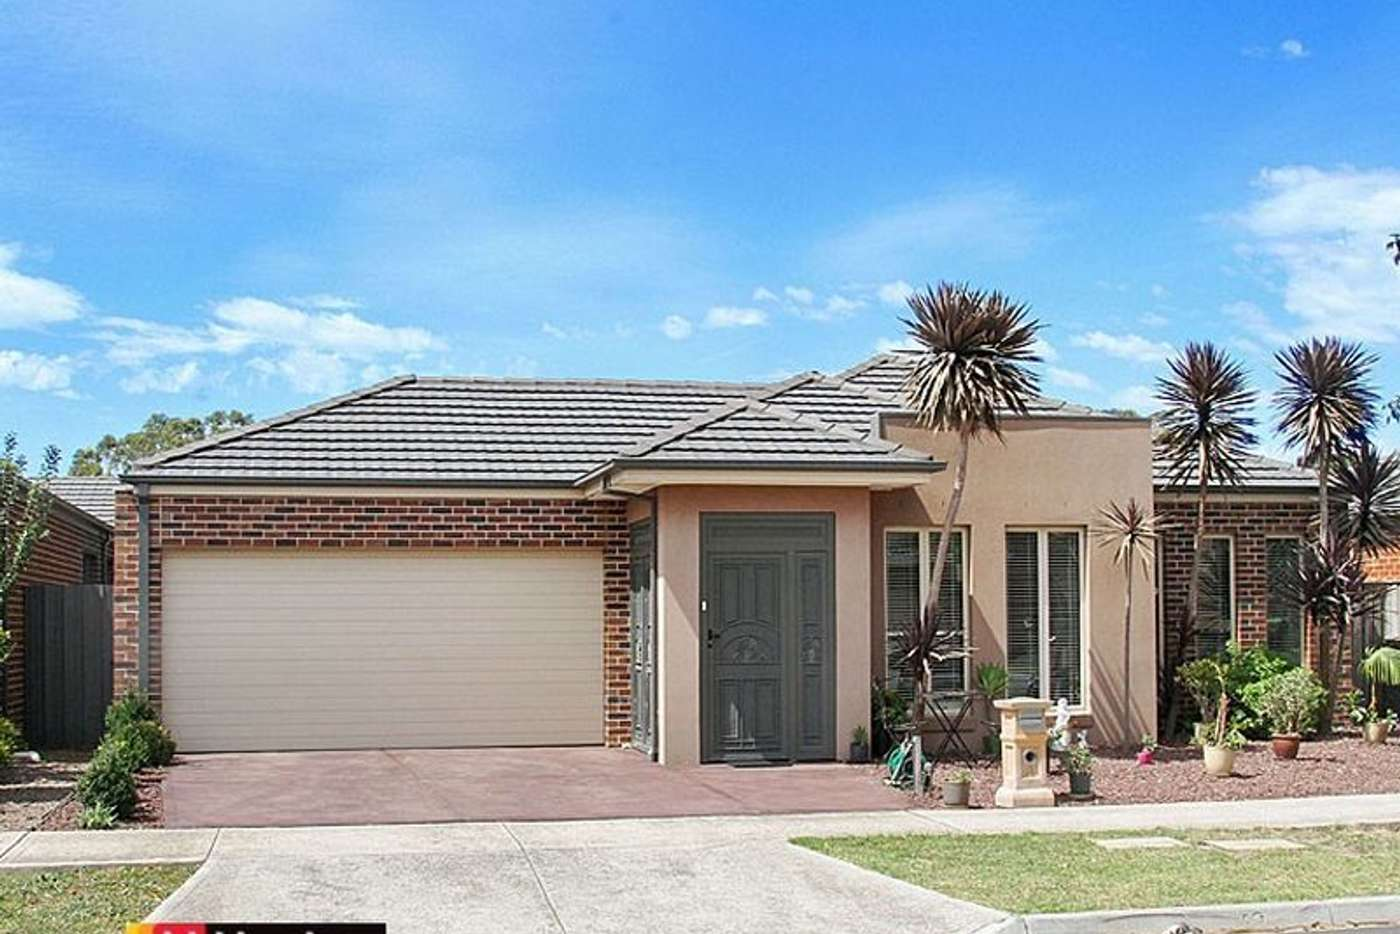 Main view of Homely house listing, 10 Villeroy St, Mernda VIC 3754